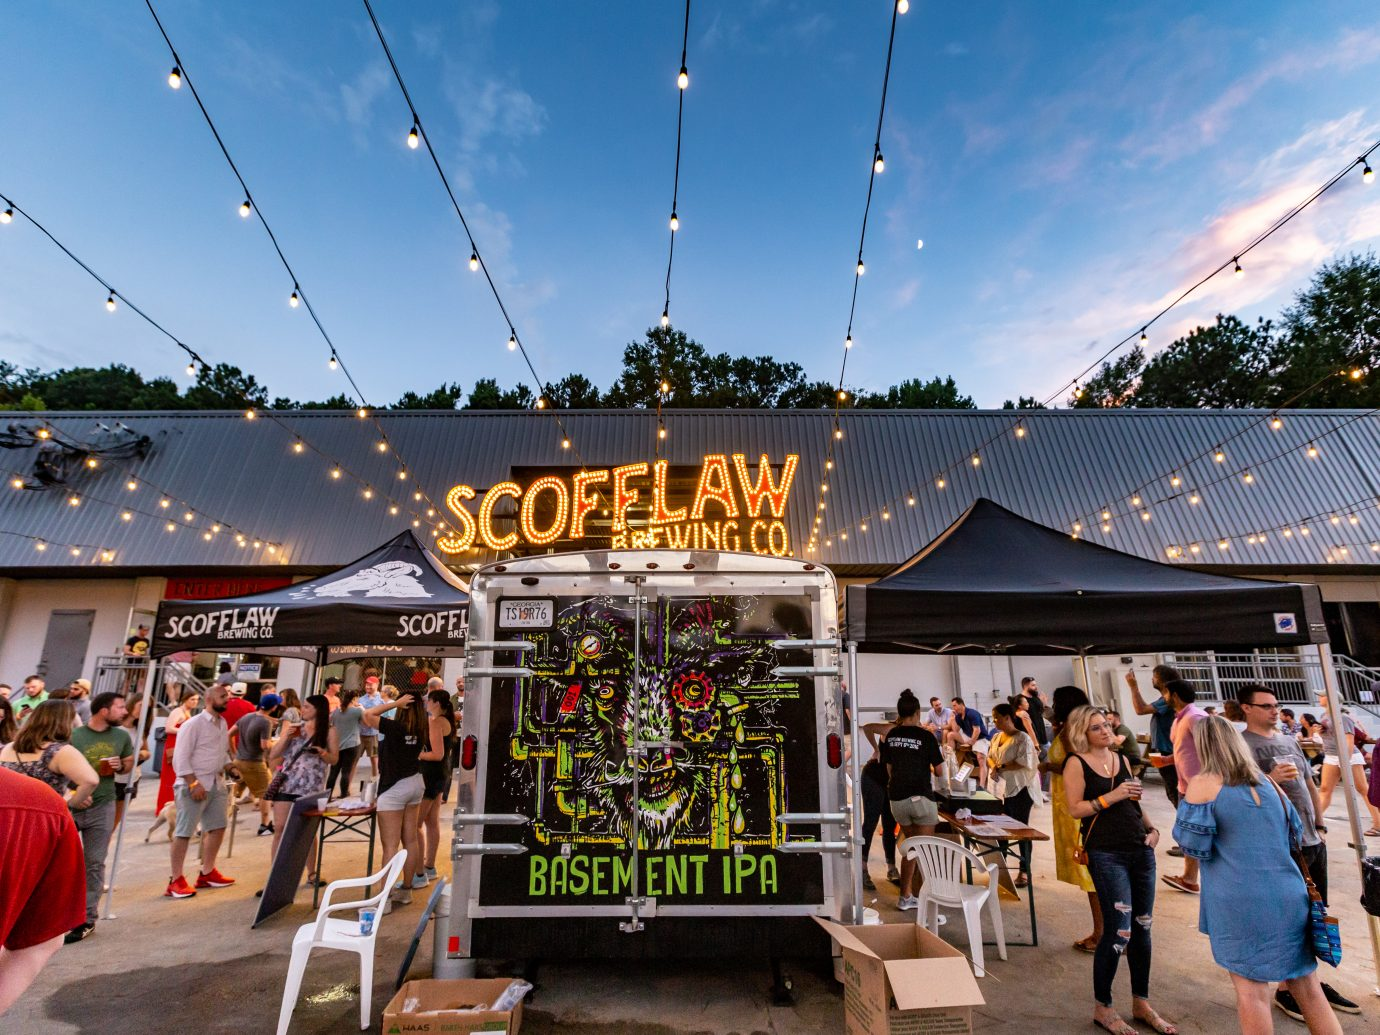 Scofflaw brewery